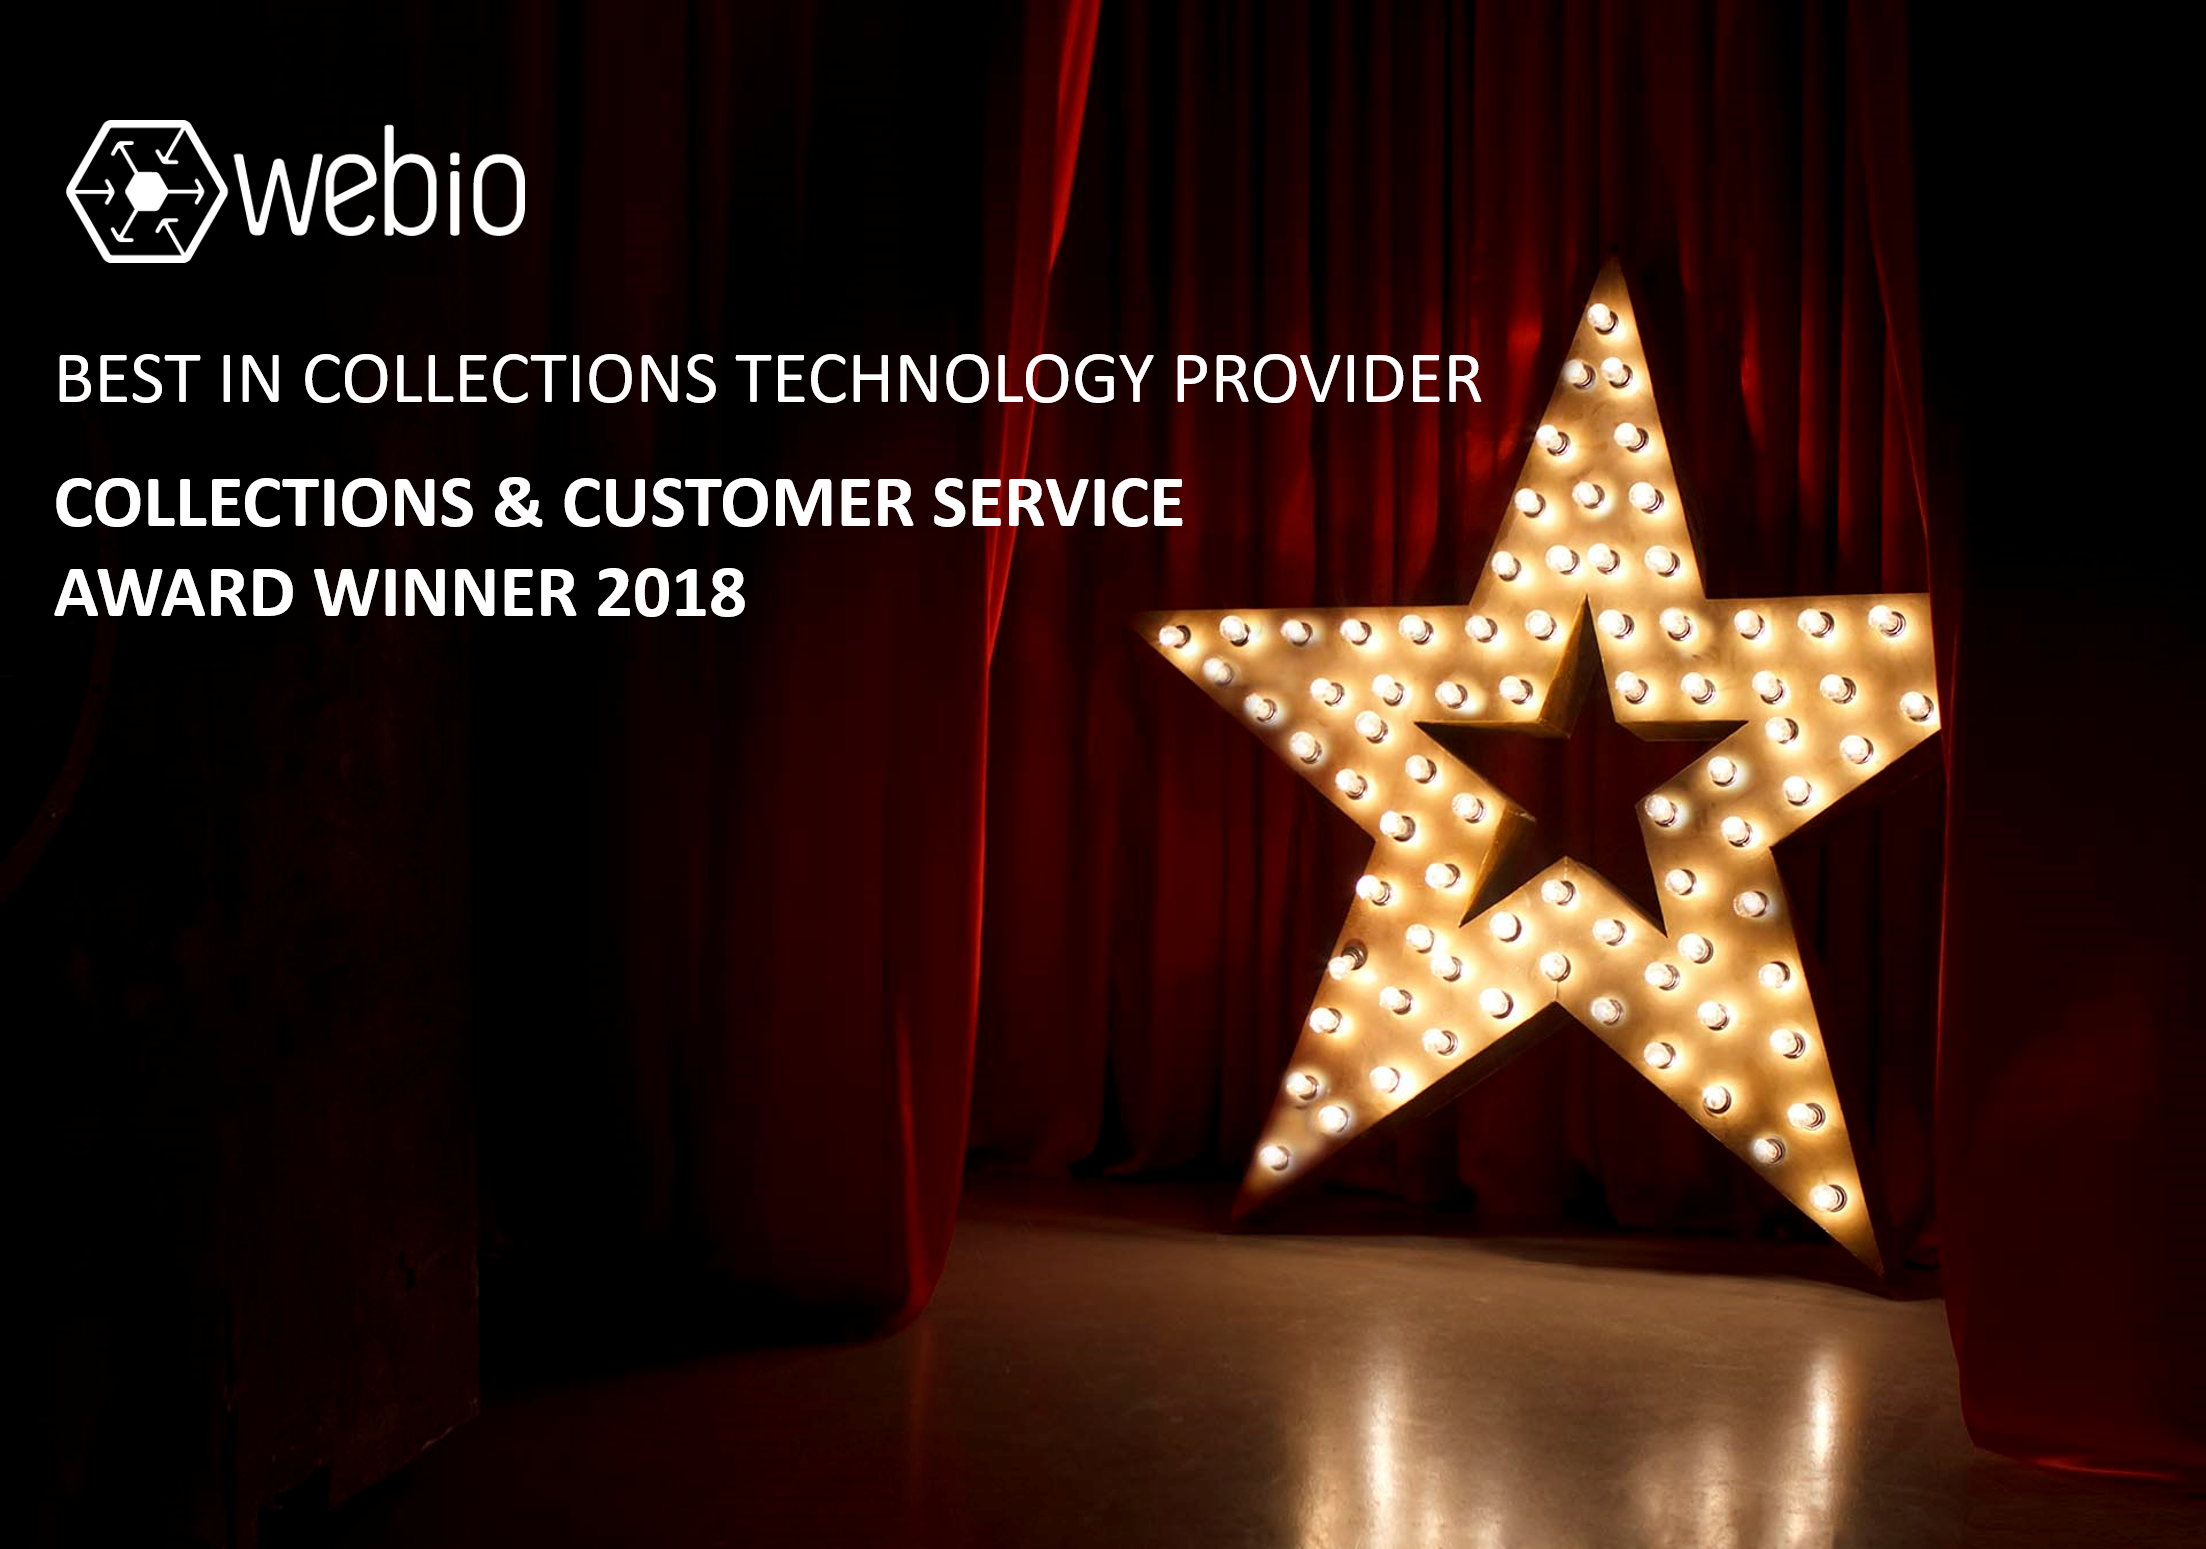 Webio Keeps Customer Conversations Flowing with Conversational Middleware